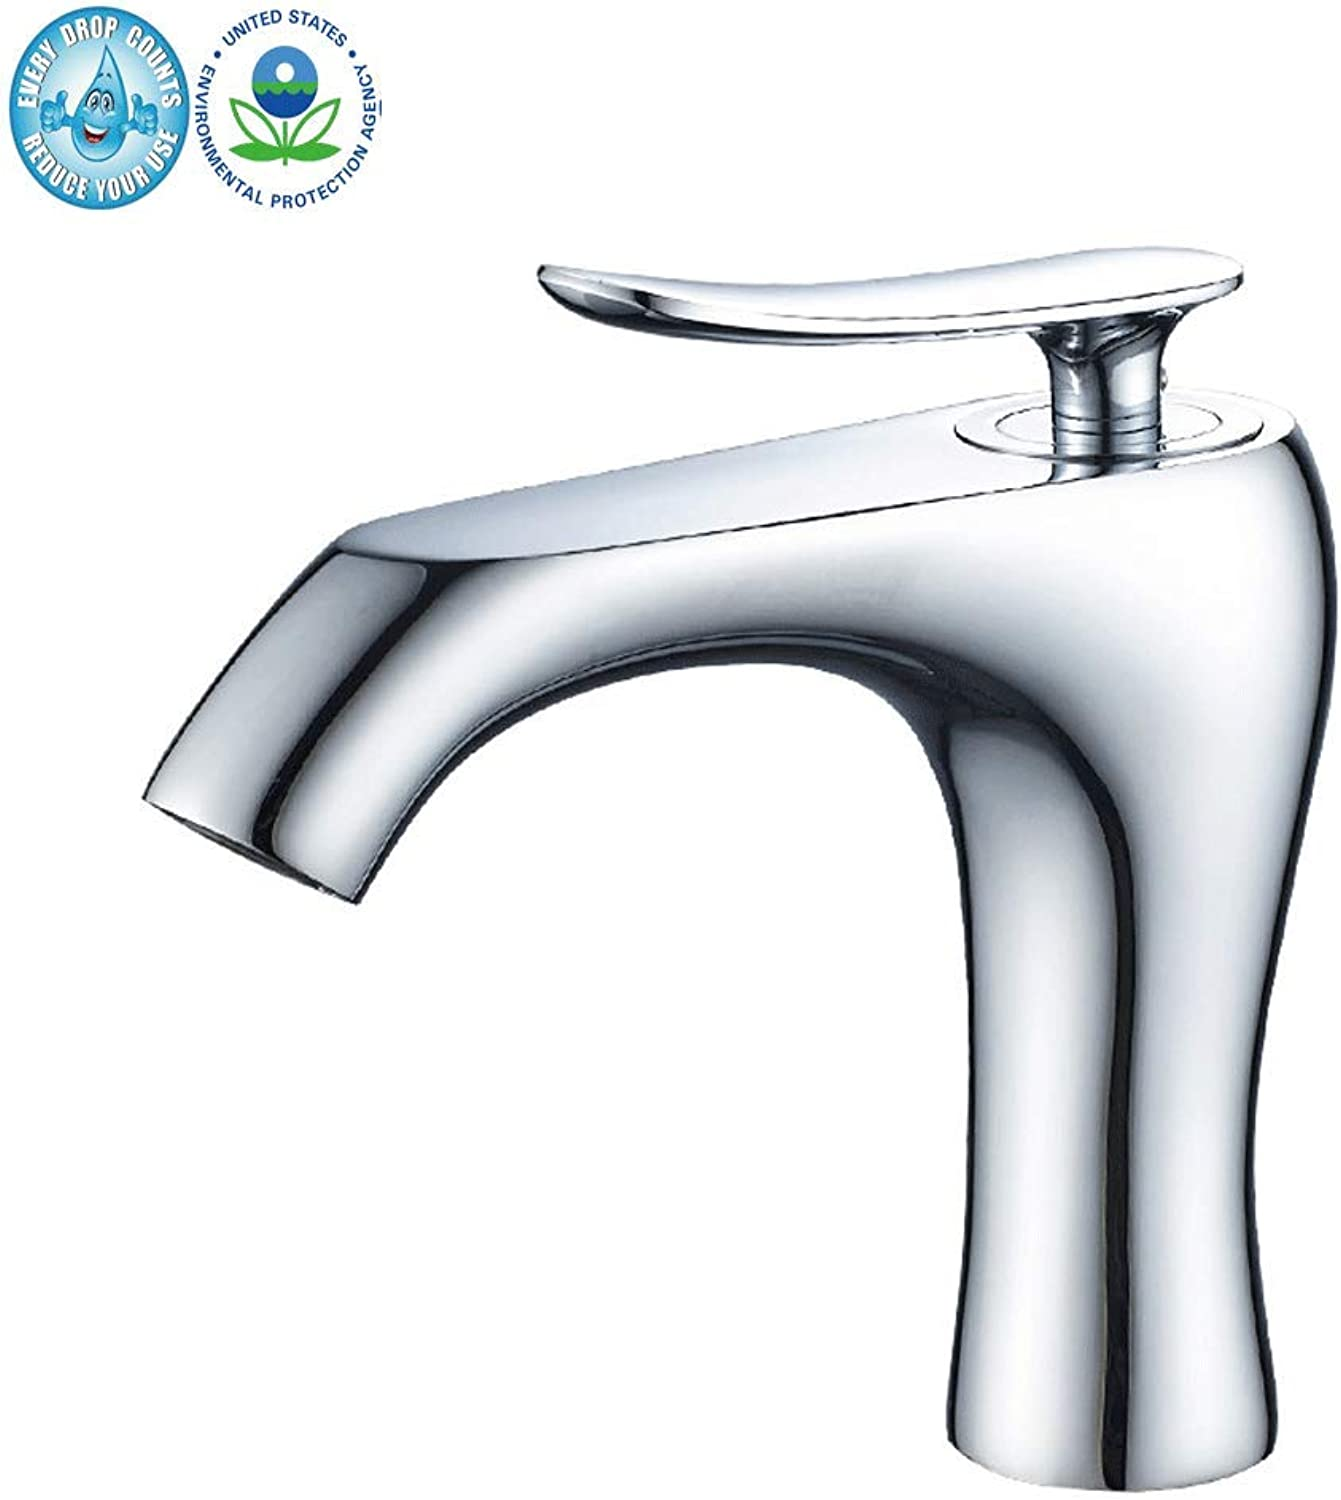 Tap Tap,Sink Taps Chrome Brass Hot Cold Mixer Tap Bathroom Water Faucet